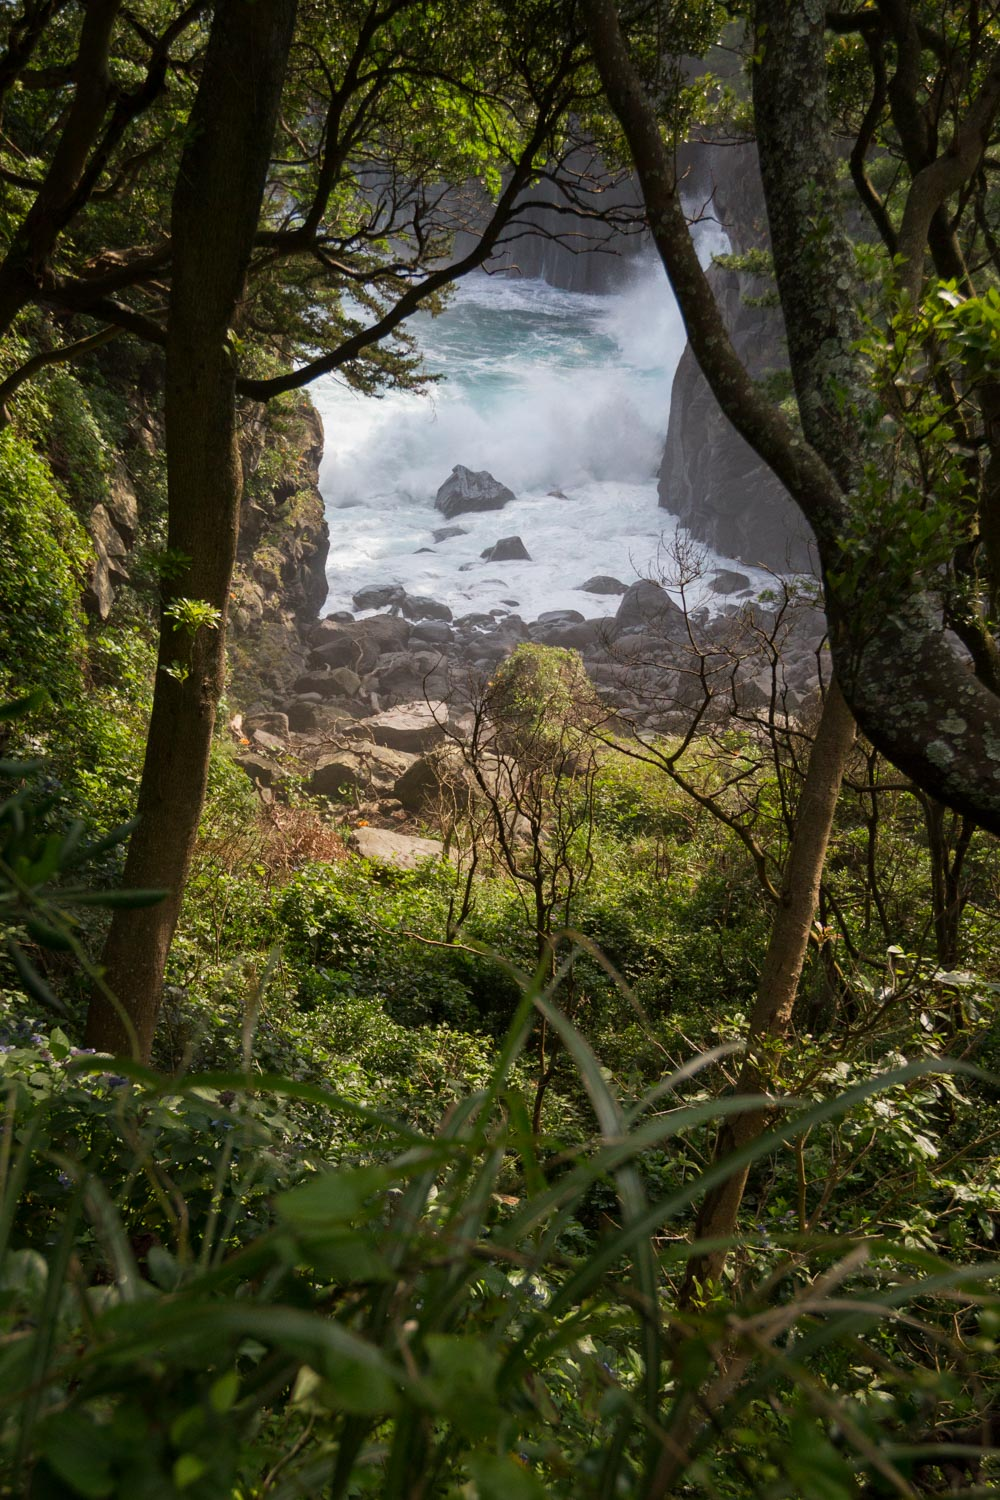 Ocean waves crash against a forested cove along Japan's Izu Peninsula coast. Photo by Daniel J. Powell